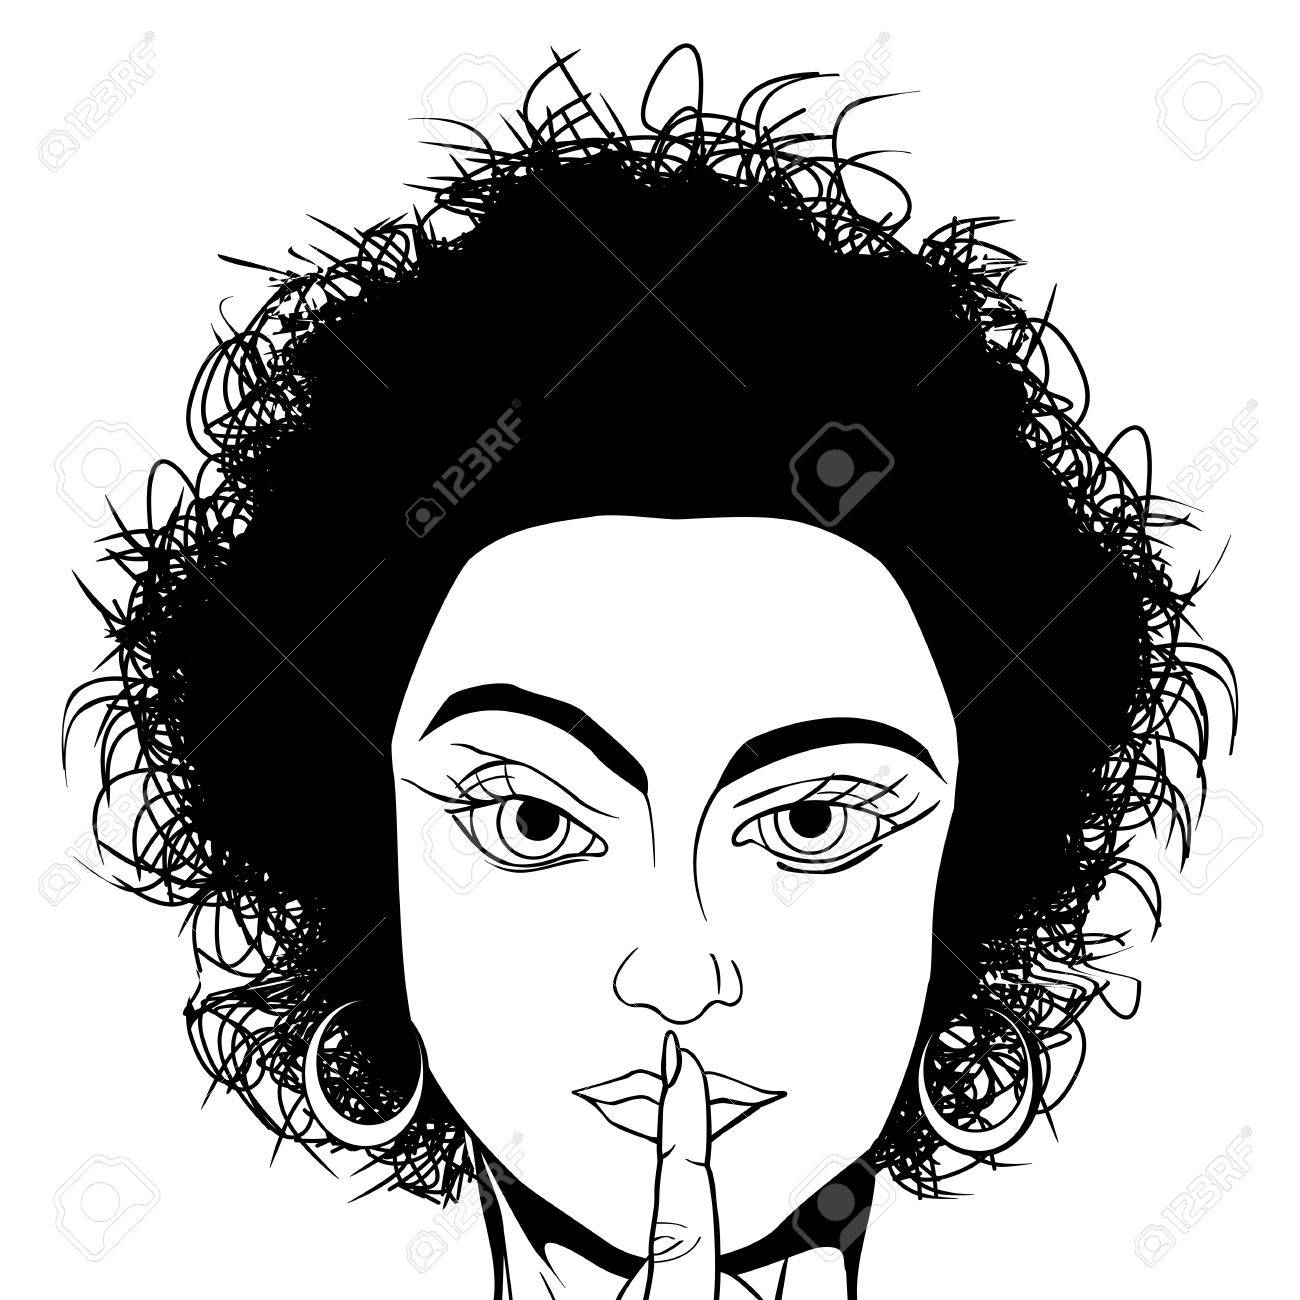 1300x1300 Comic Style Black And White Drawing Of A Girl Requestion Silence